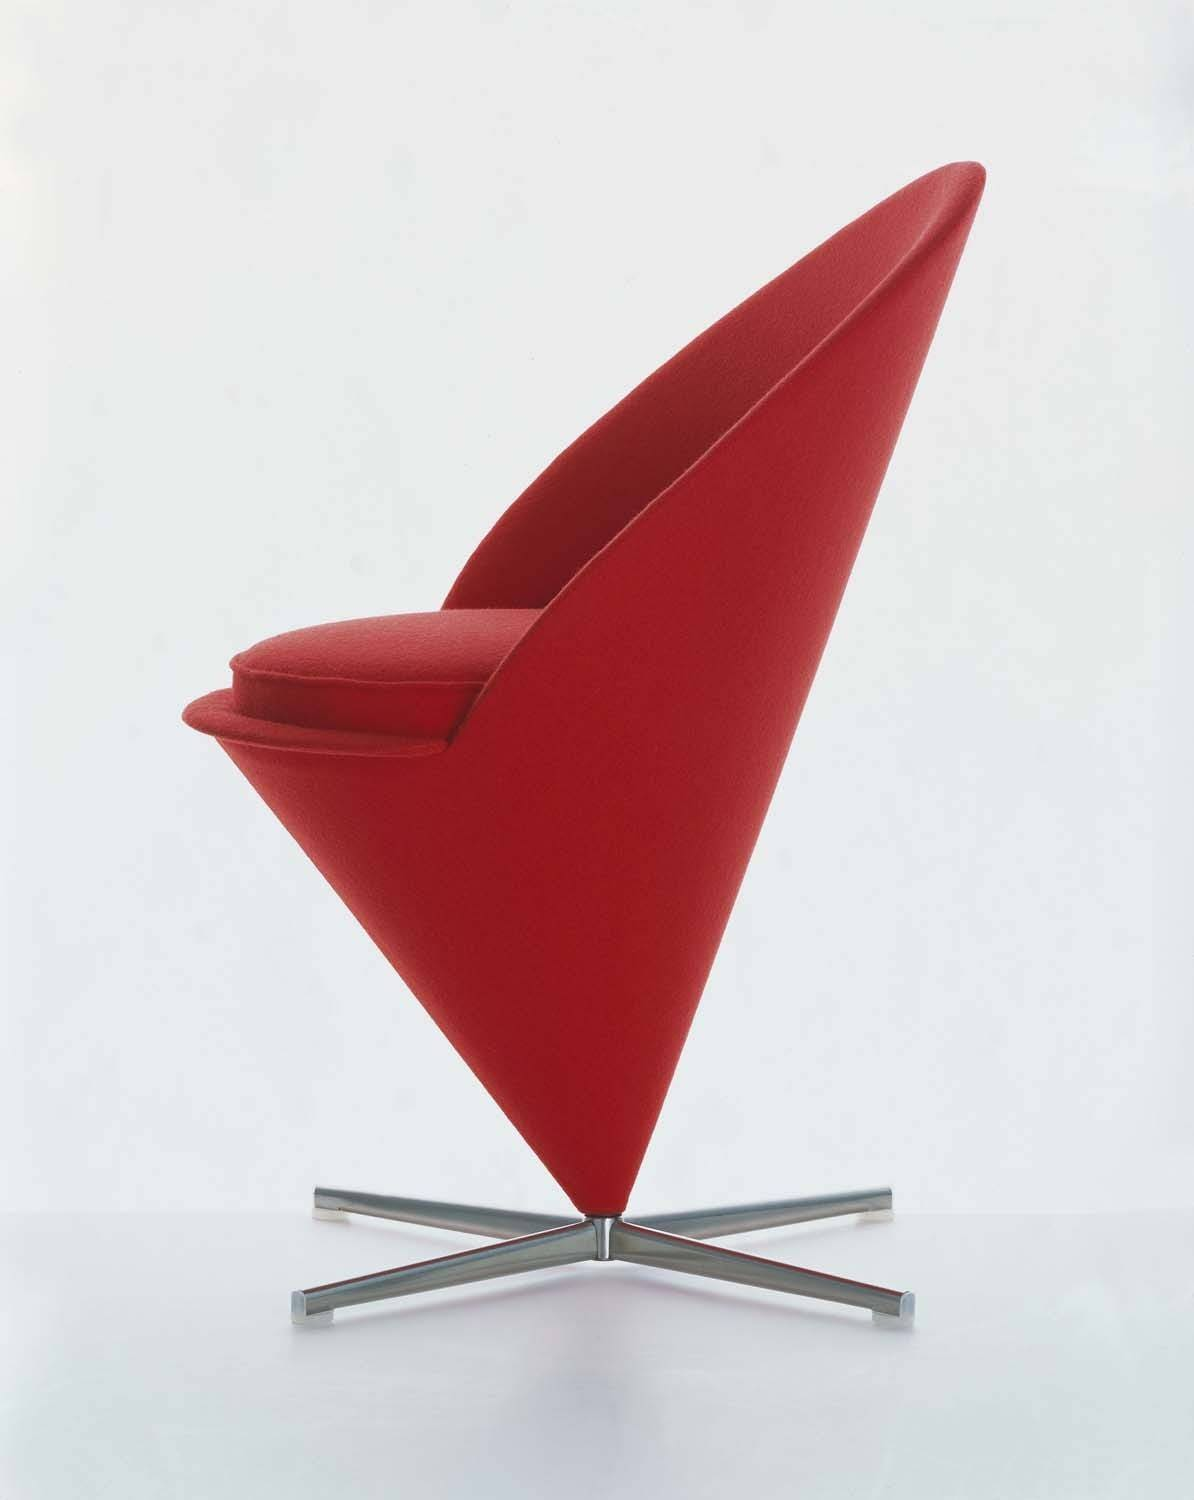 vitra verner panton cone chair gr shop canada. Black Bedroom Furniture Sets. Home Design Ideas